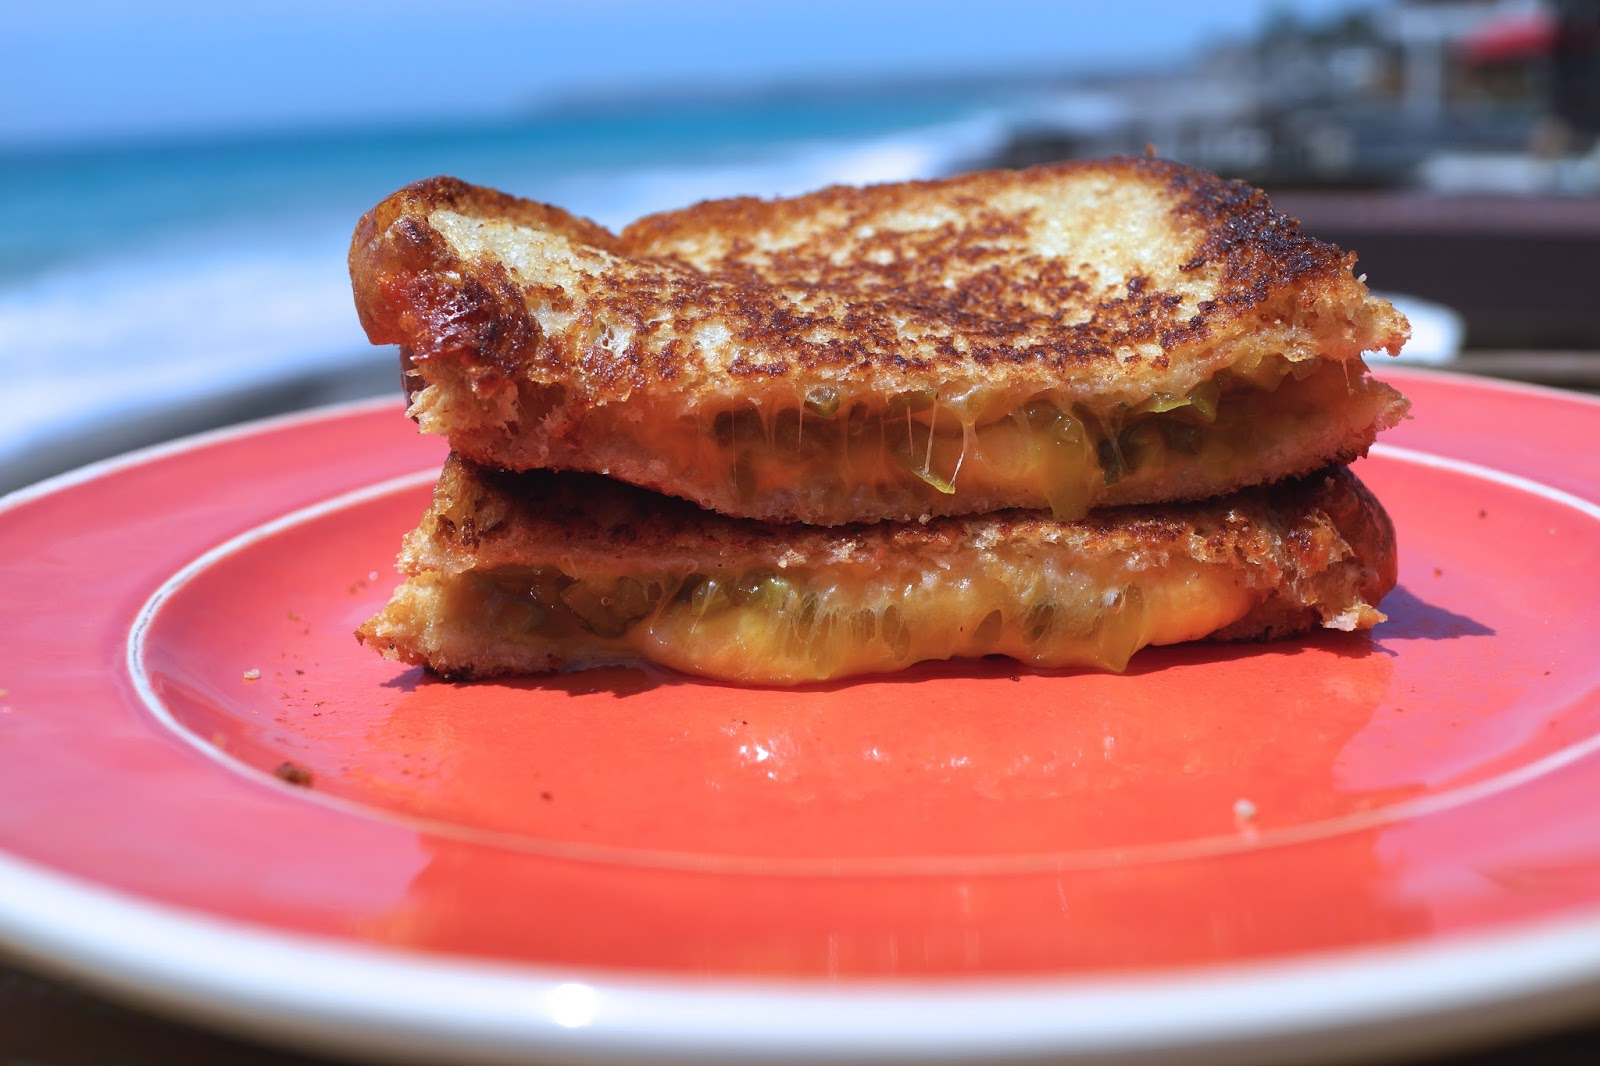 You also might like this Grilled Cheese and Pickle Panini